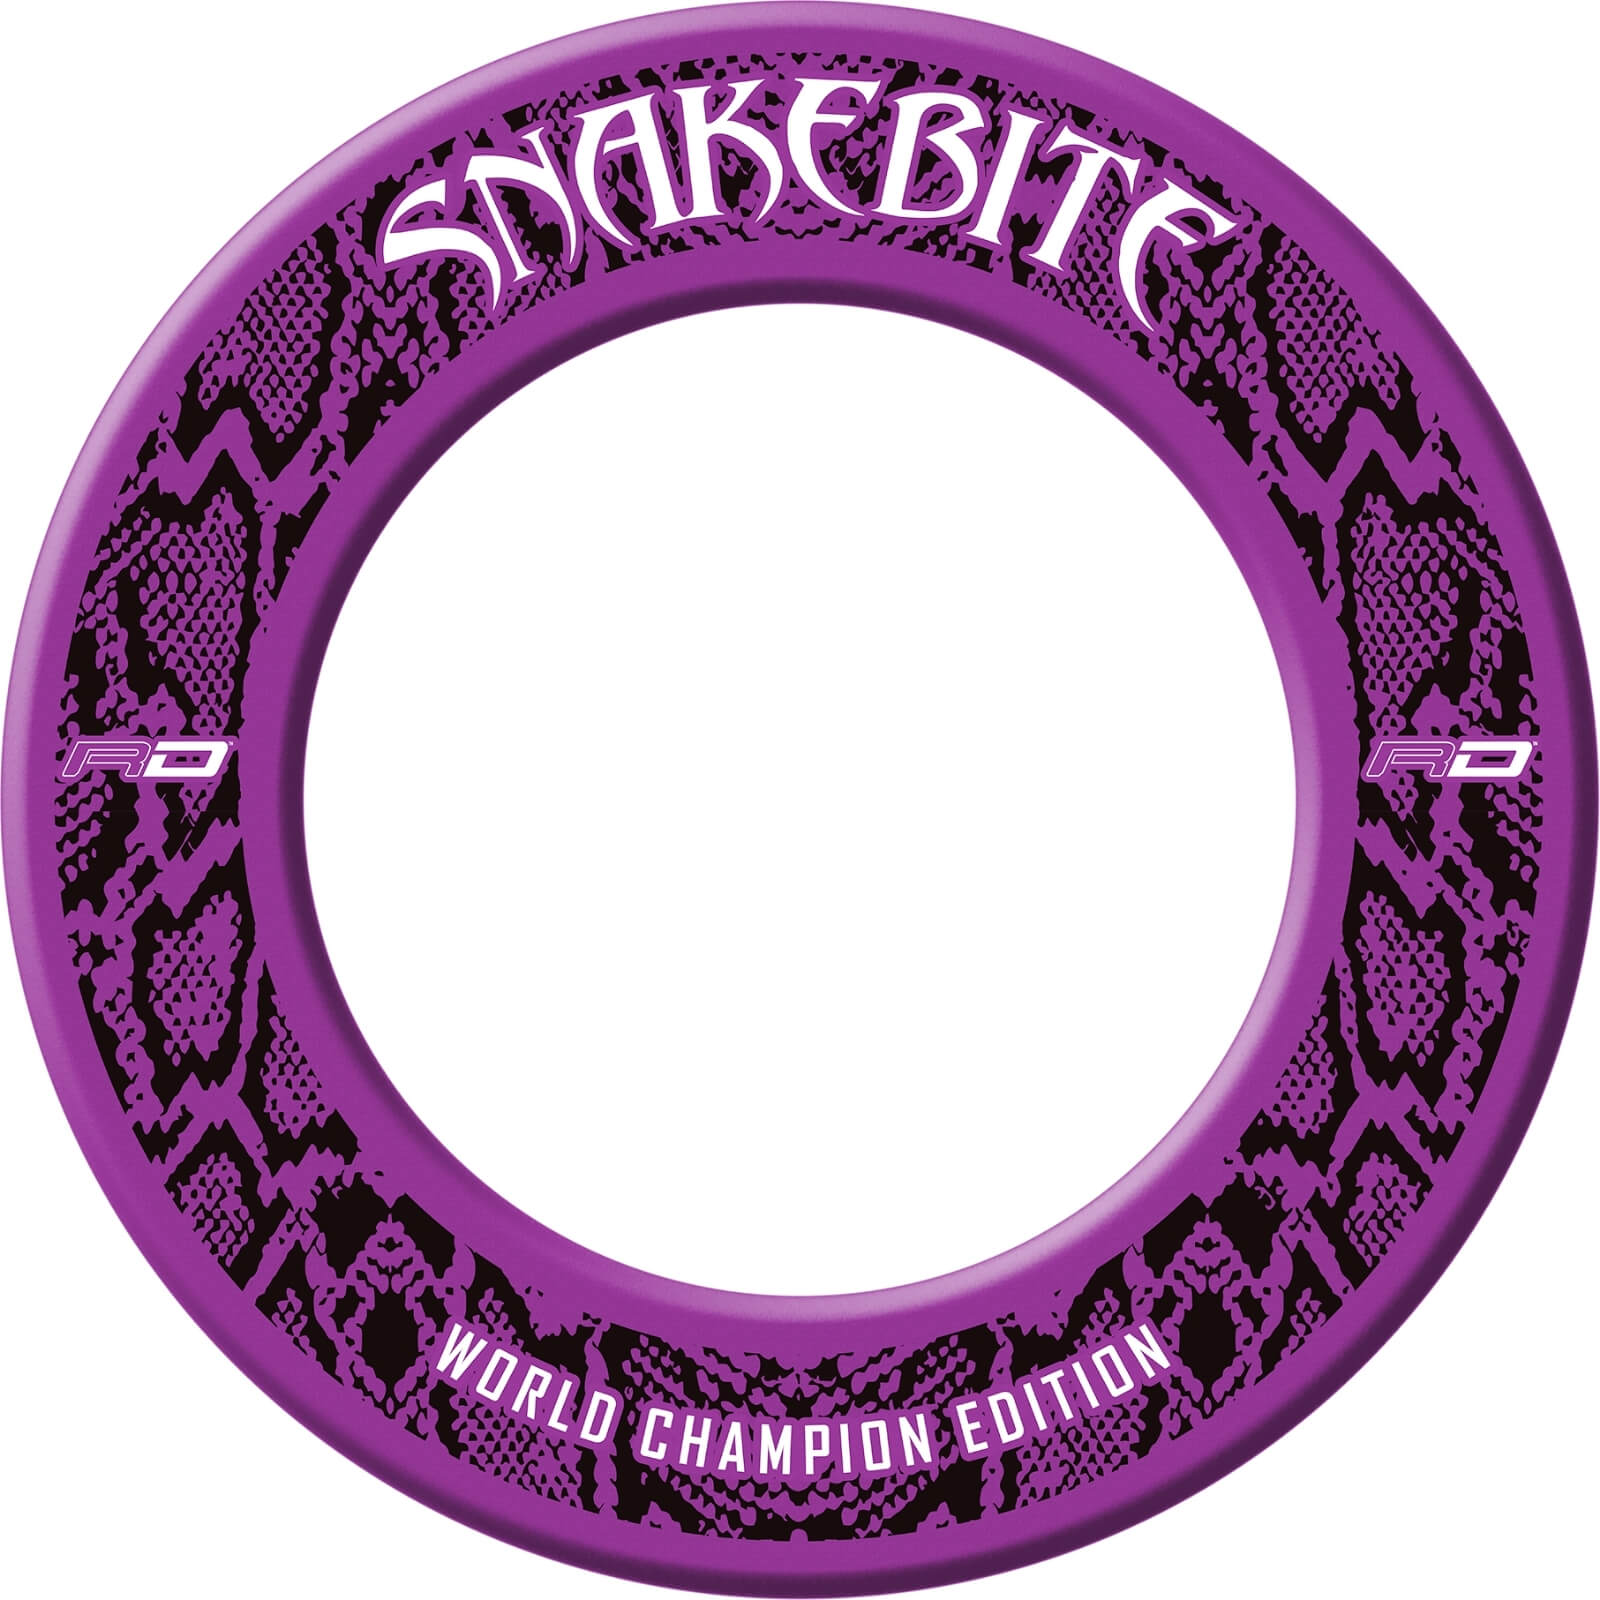 Dartboard Accessories - Red Dragon - Snakebite World Champion Edition Dartboard Surround